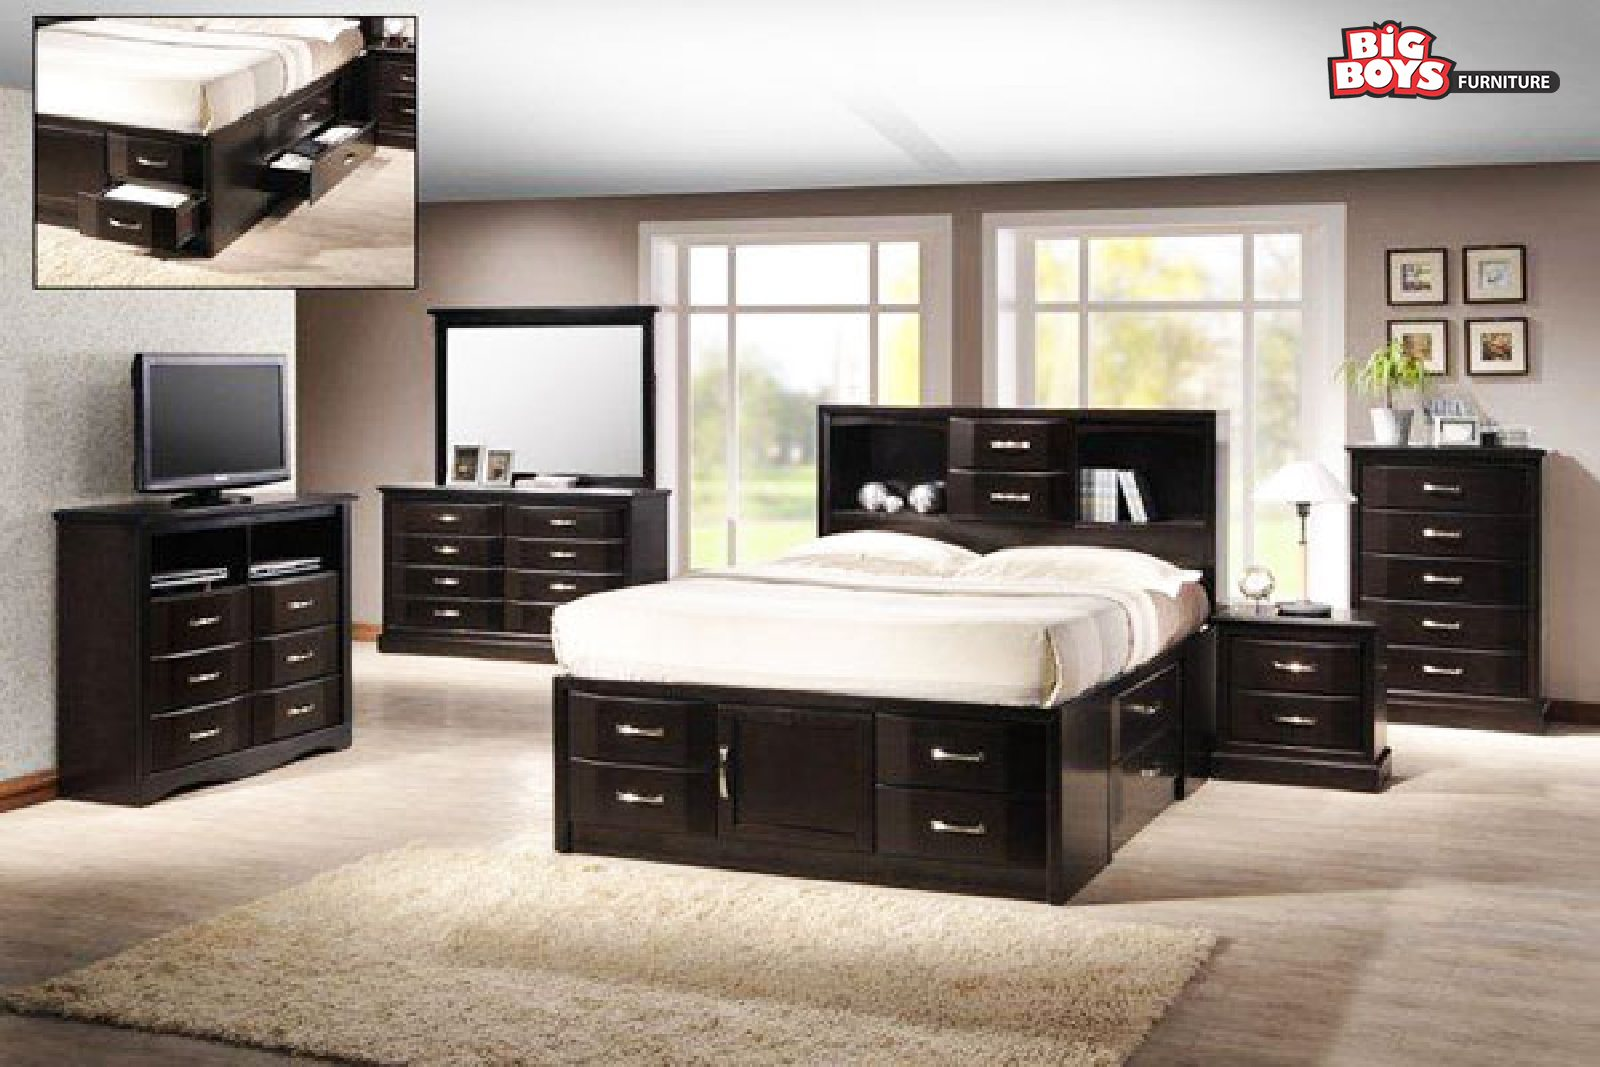 047-Big-Boys-Furniture-Delta-Bedroom-BR3-Drawer-bedroom-set1